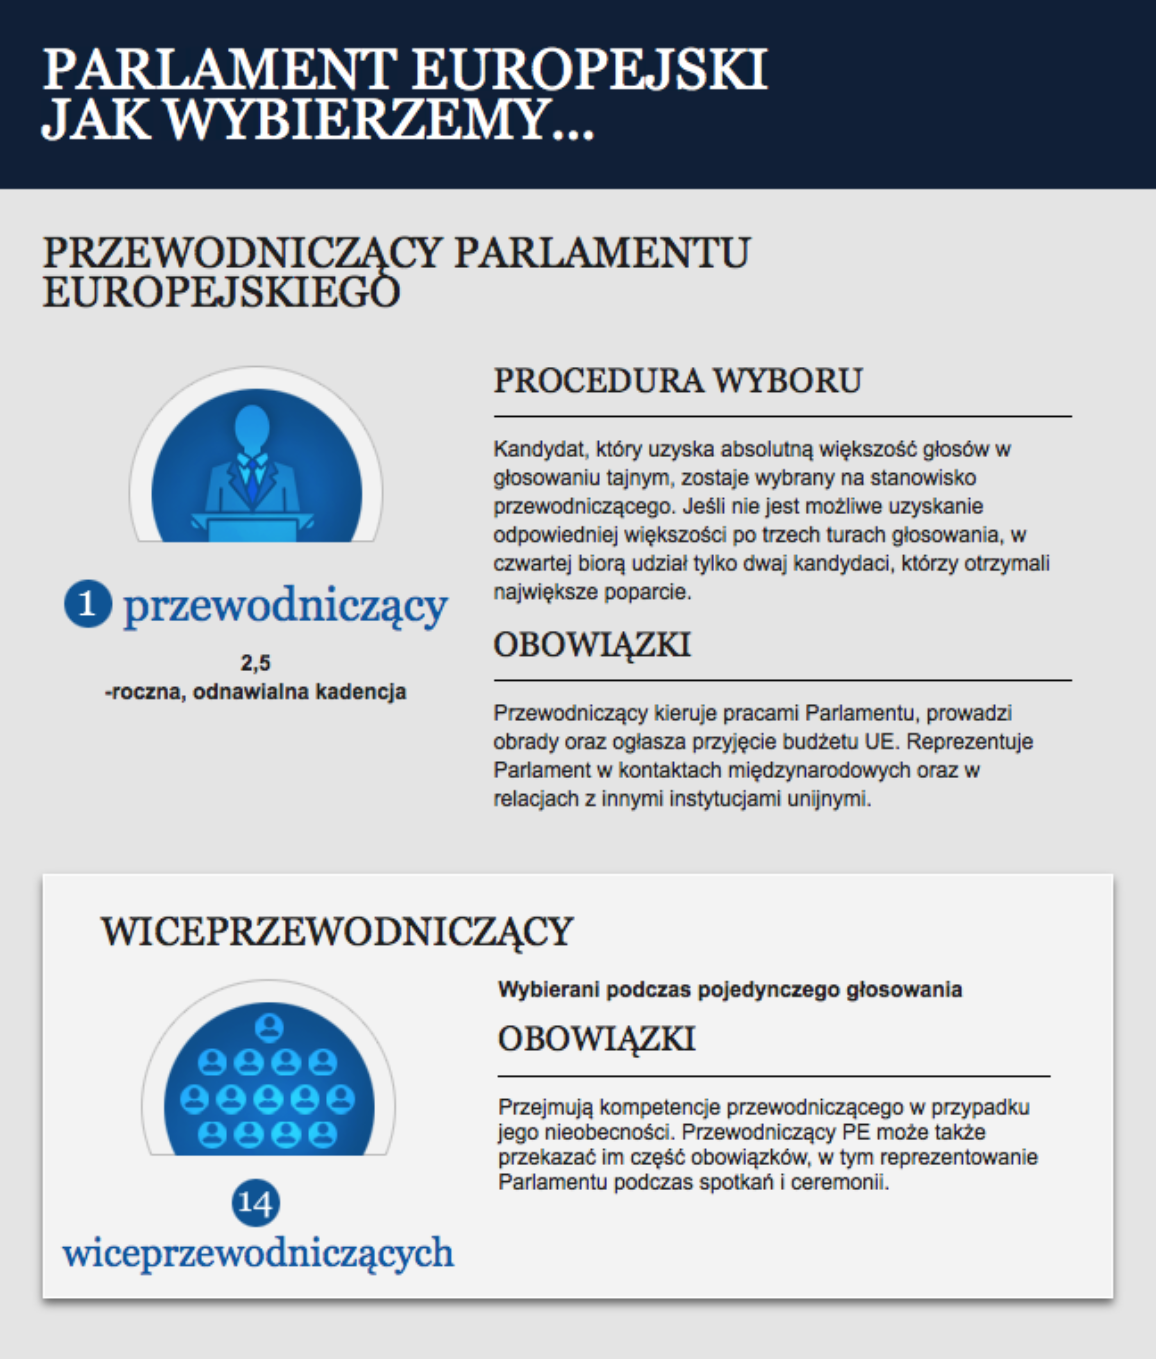 infographie illustration on how to elect the President of the European Parliament